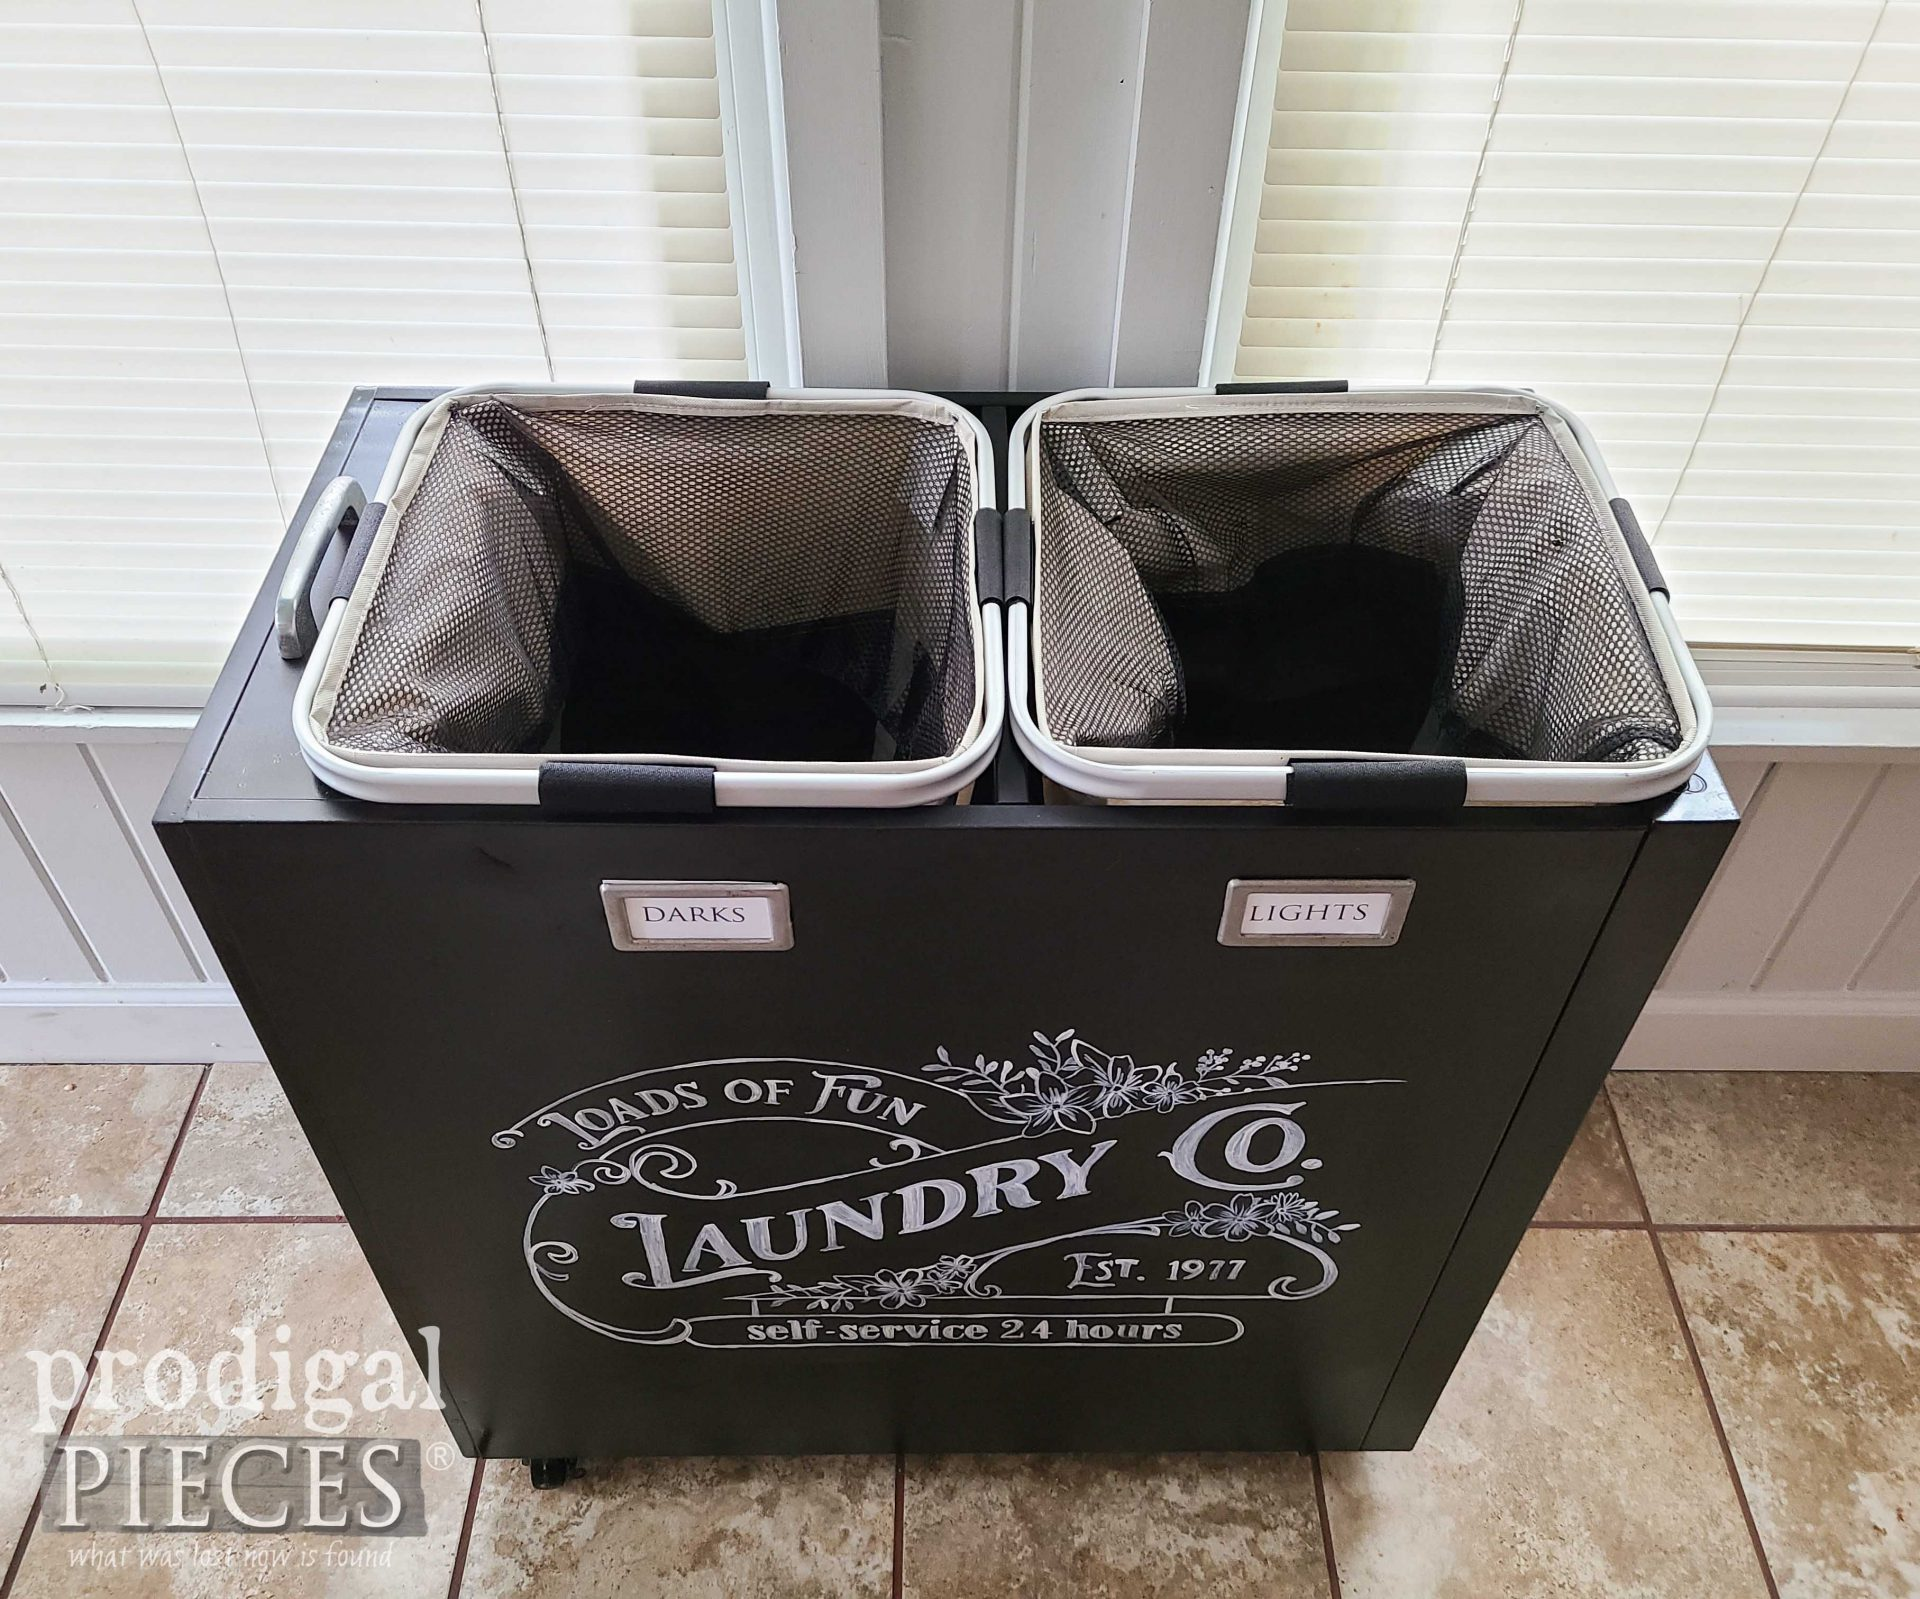 Top View of Upcycled Laundry Bin by Larissa of Prodigal Pieces   prodigalpieces.com #prodigalpieces #laundry #diy